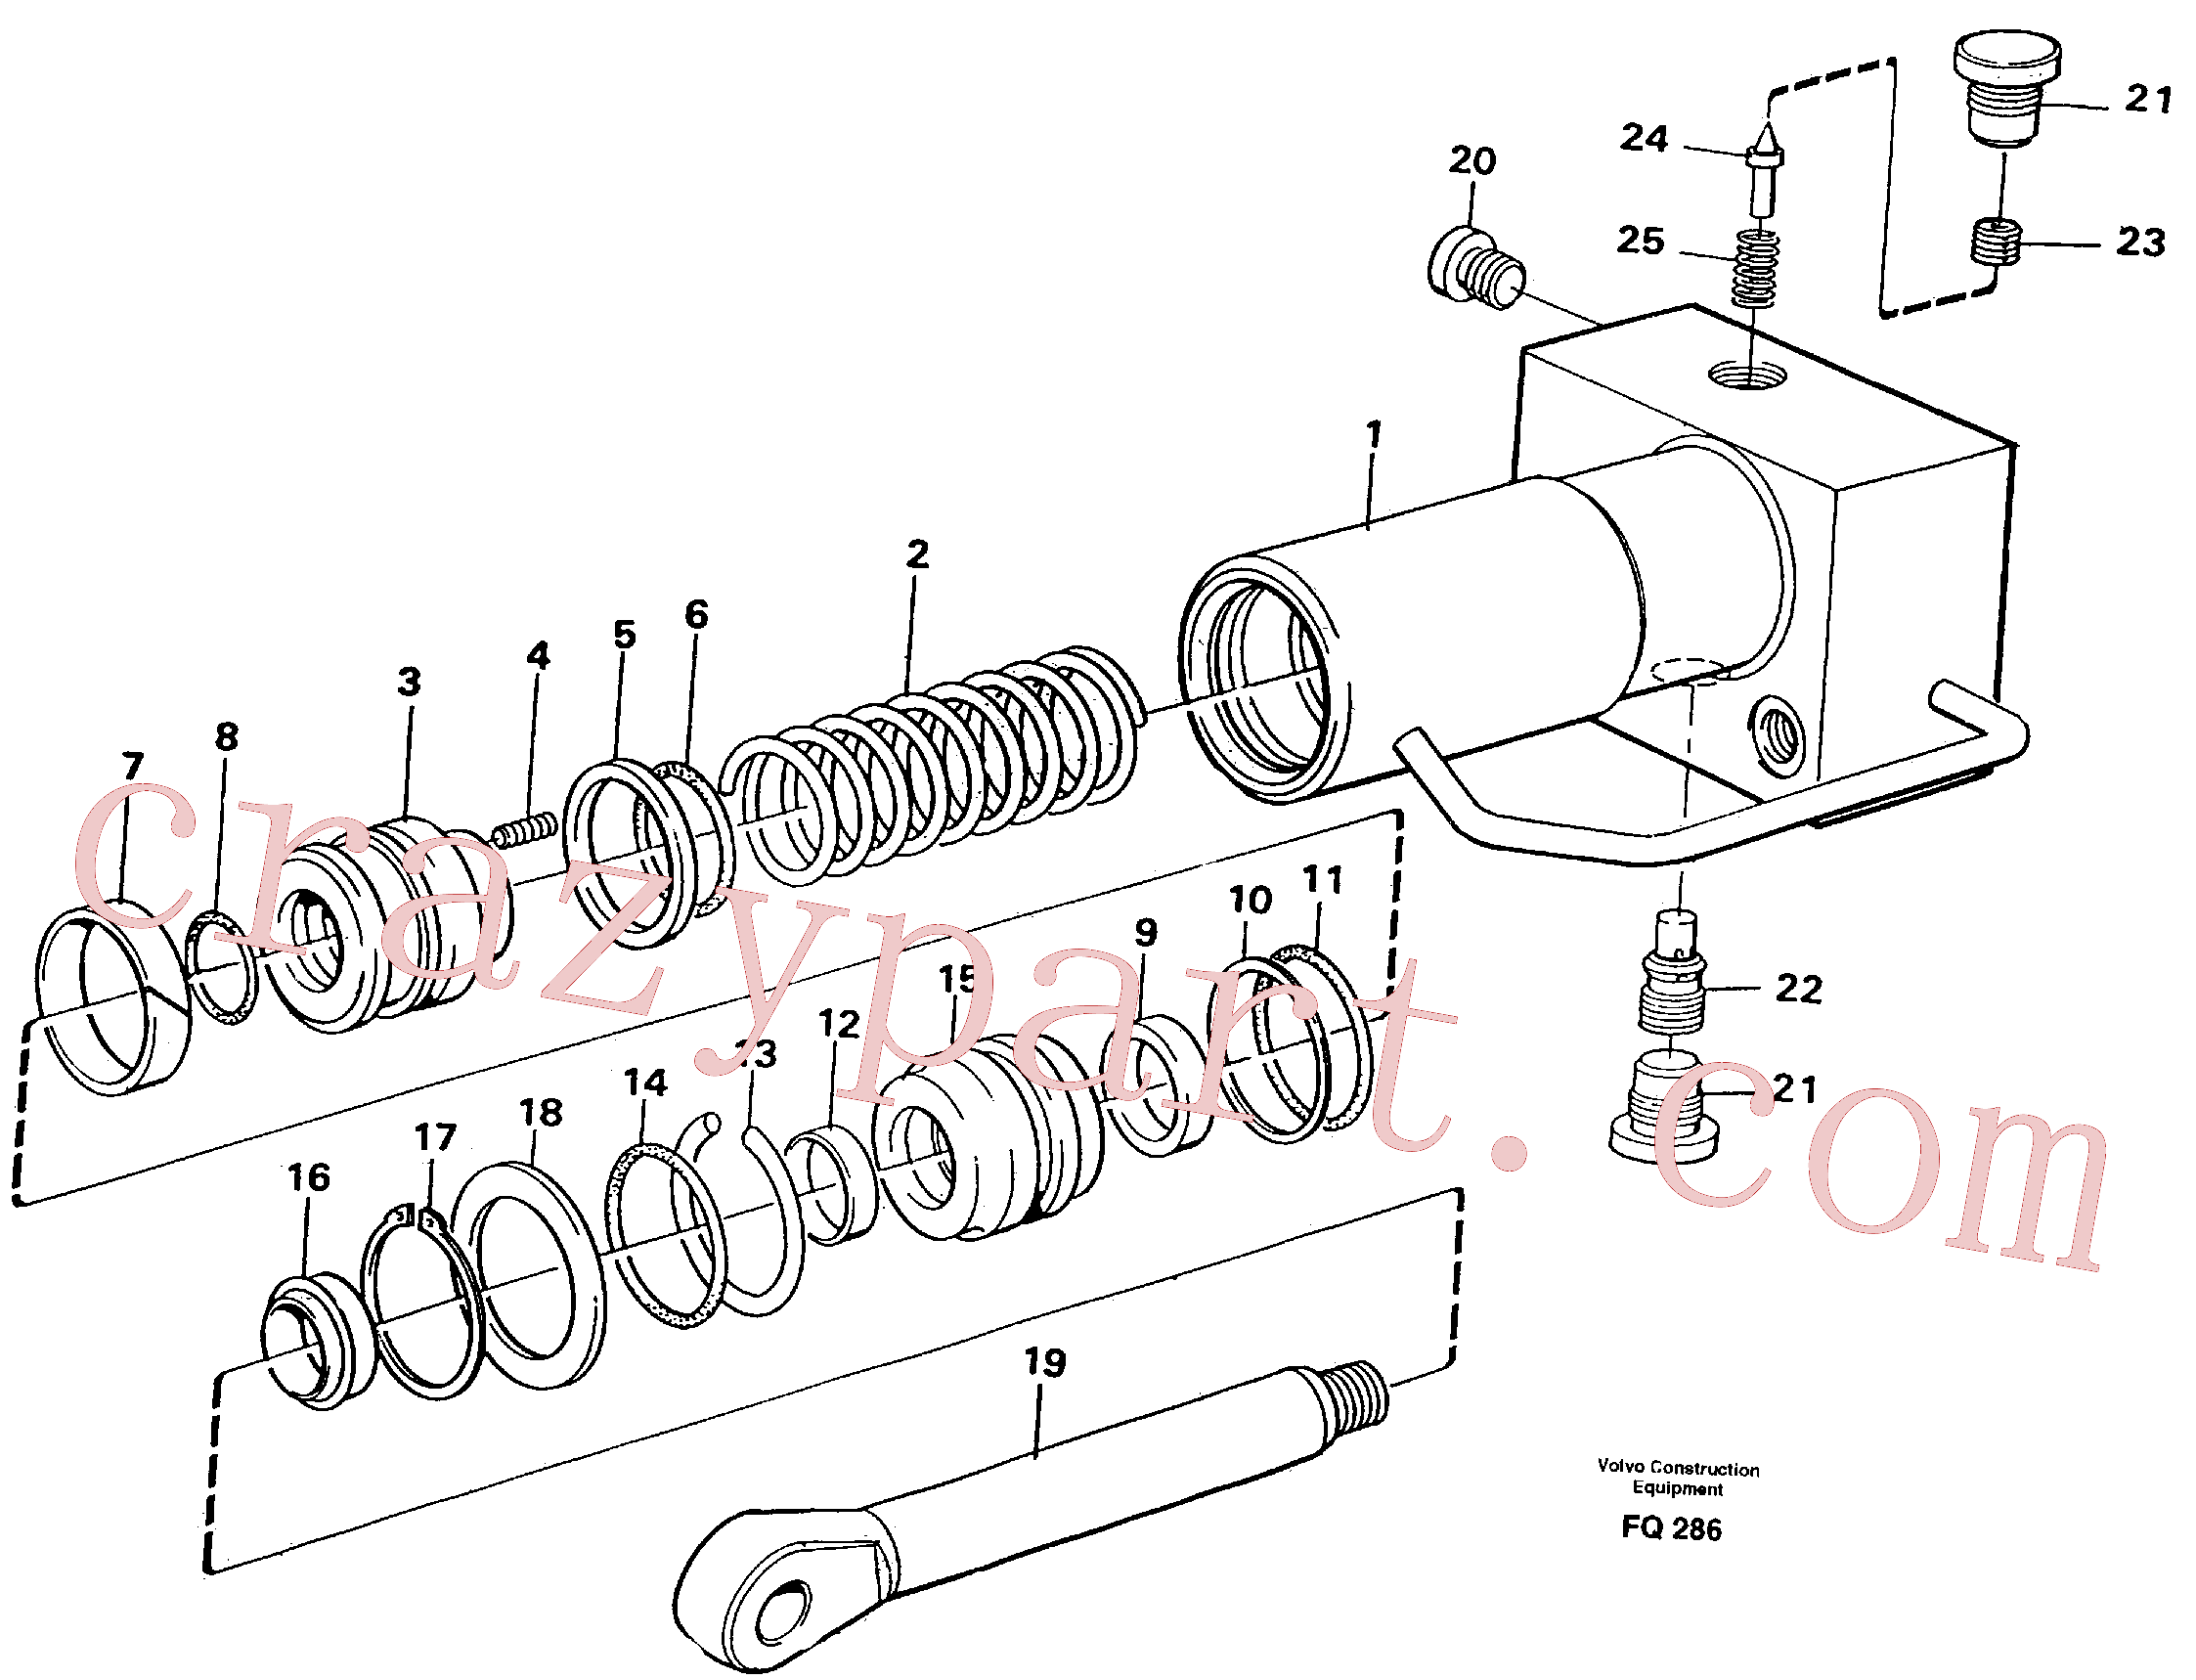 VOE14212818 for Volvo Hydraulic cylinder, quick attachment(FQ286 assembly)